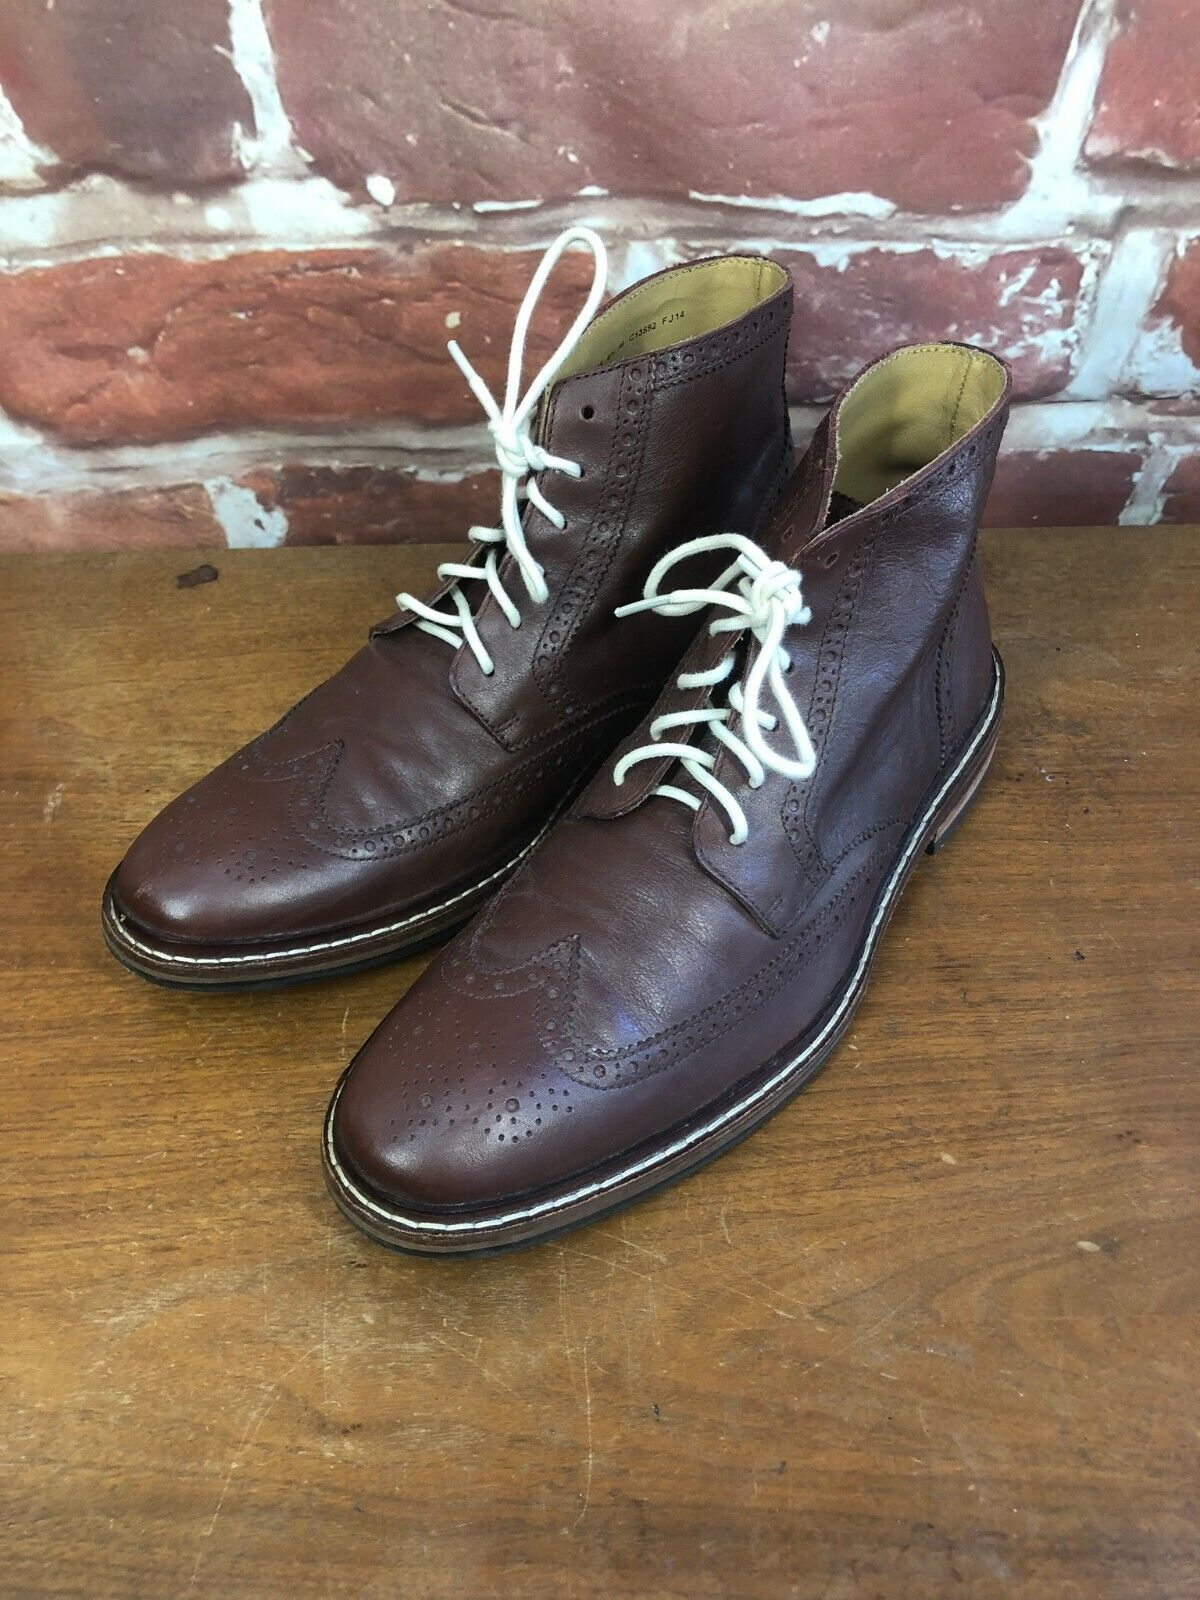 295.00 Cole Haan 11.5 Williams Oxblood Wingtip Ankle new shoes Boots